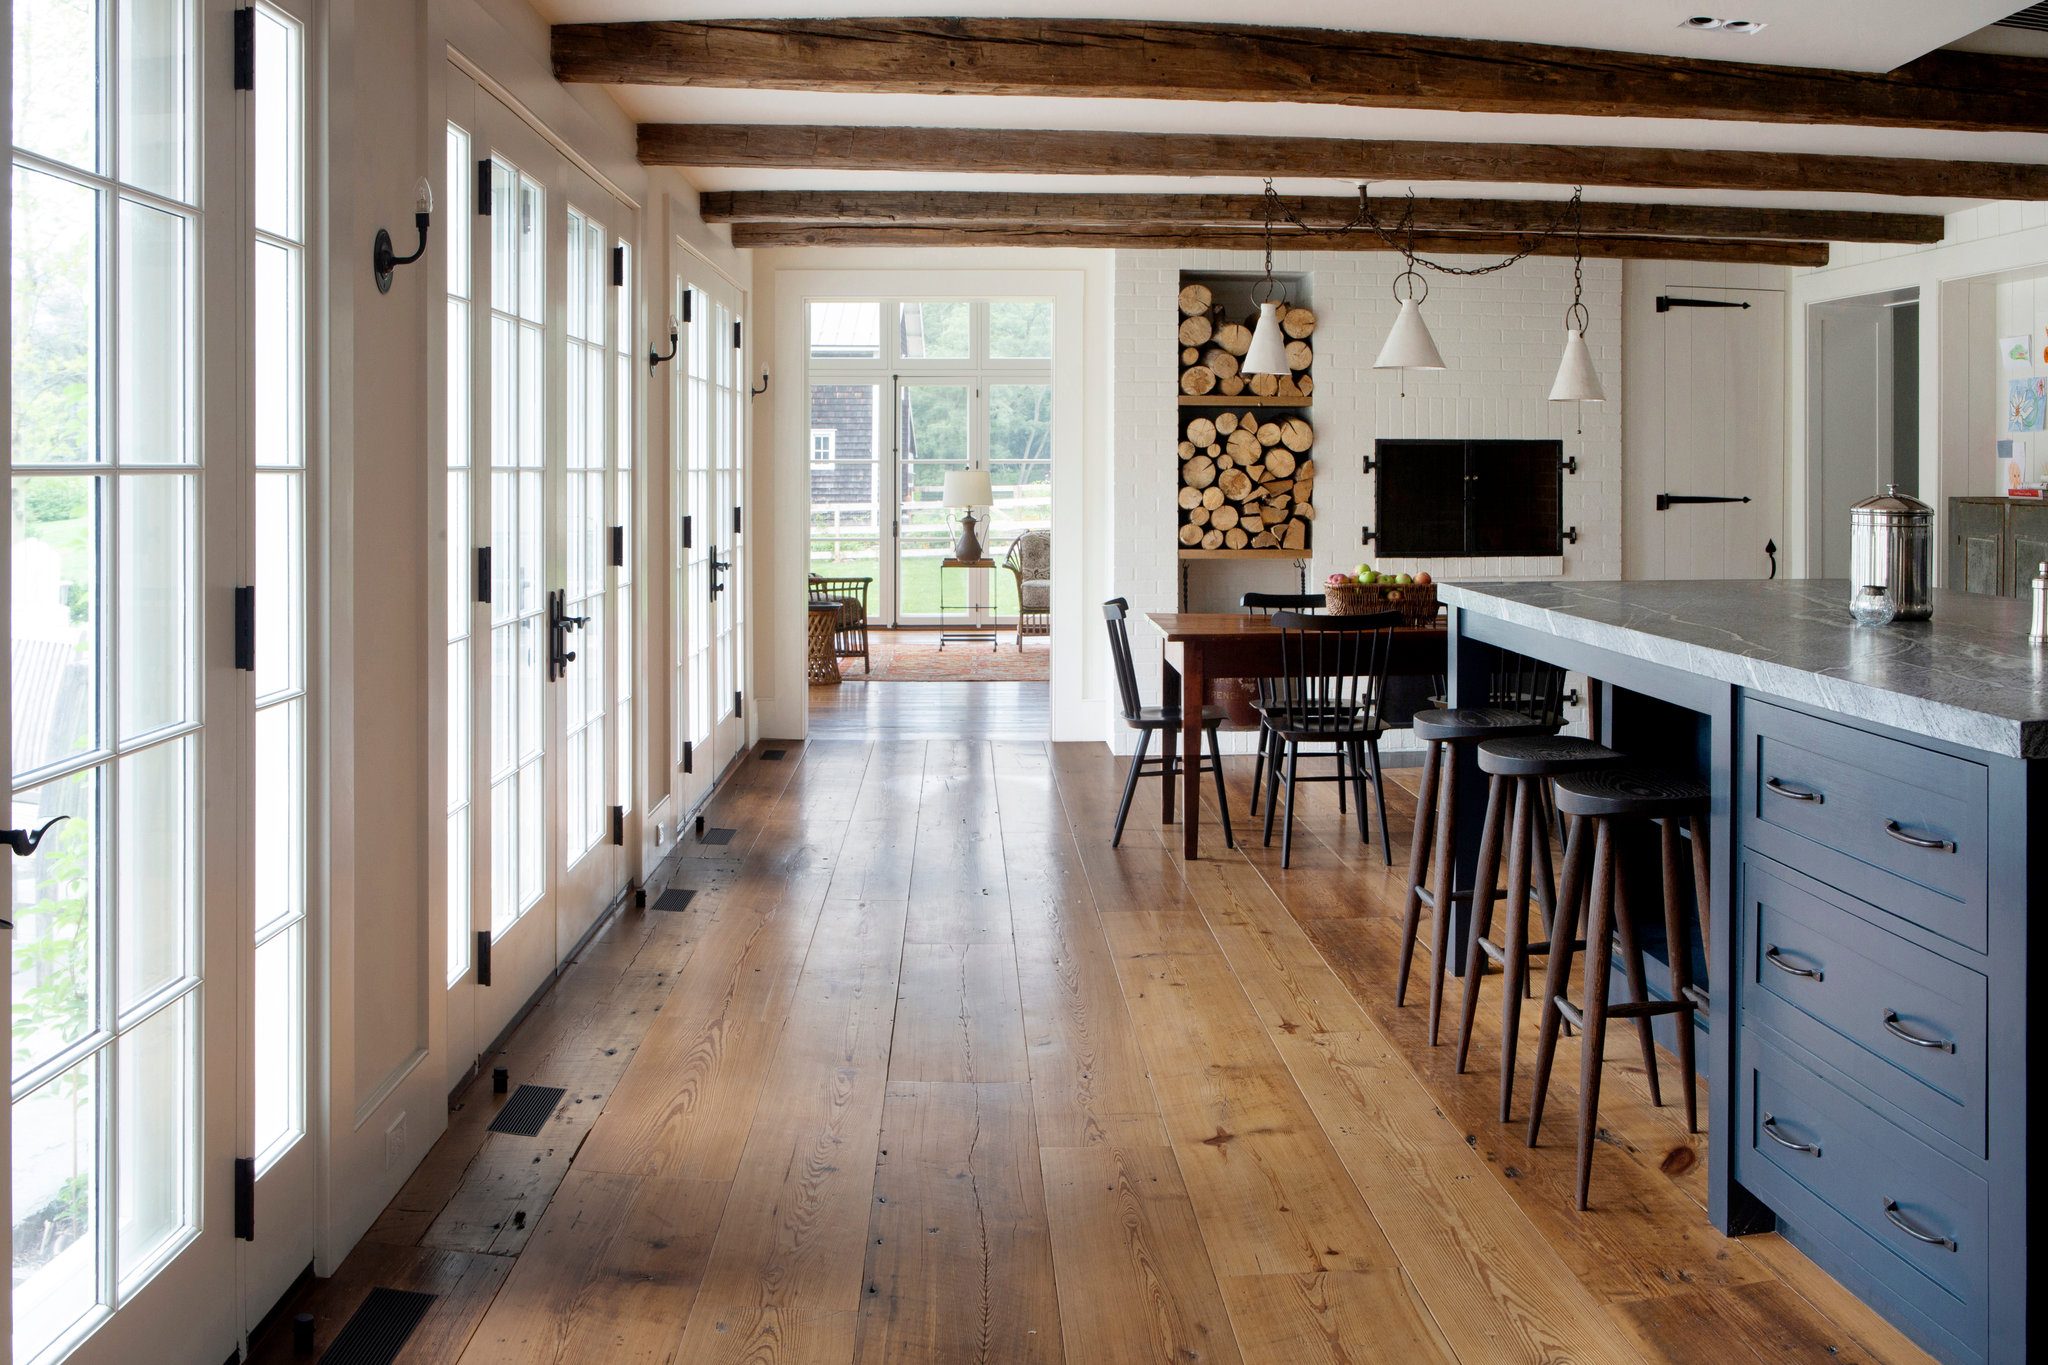 Observations about Wood Flooring